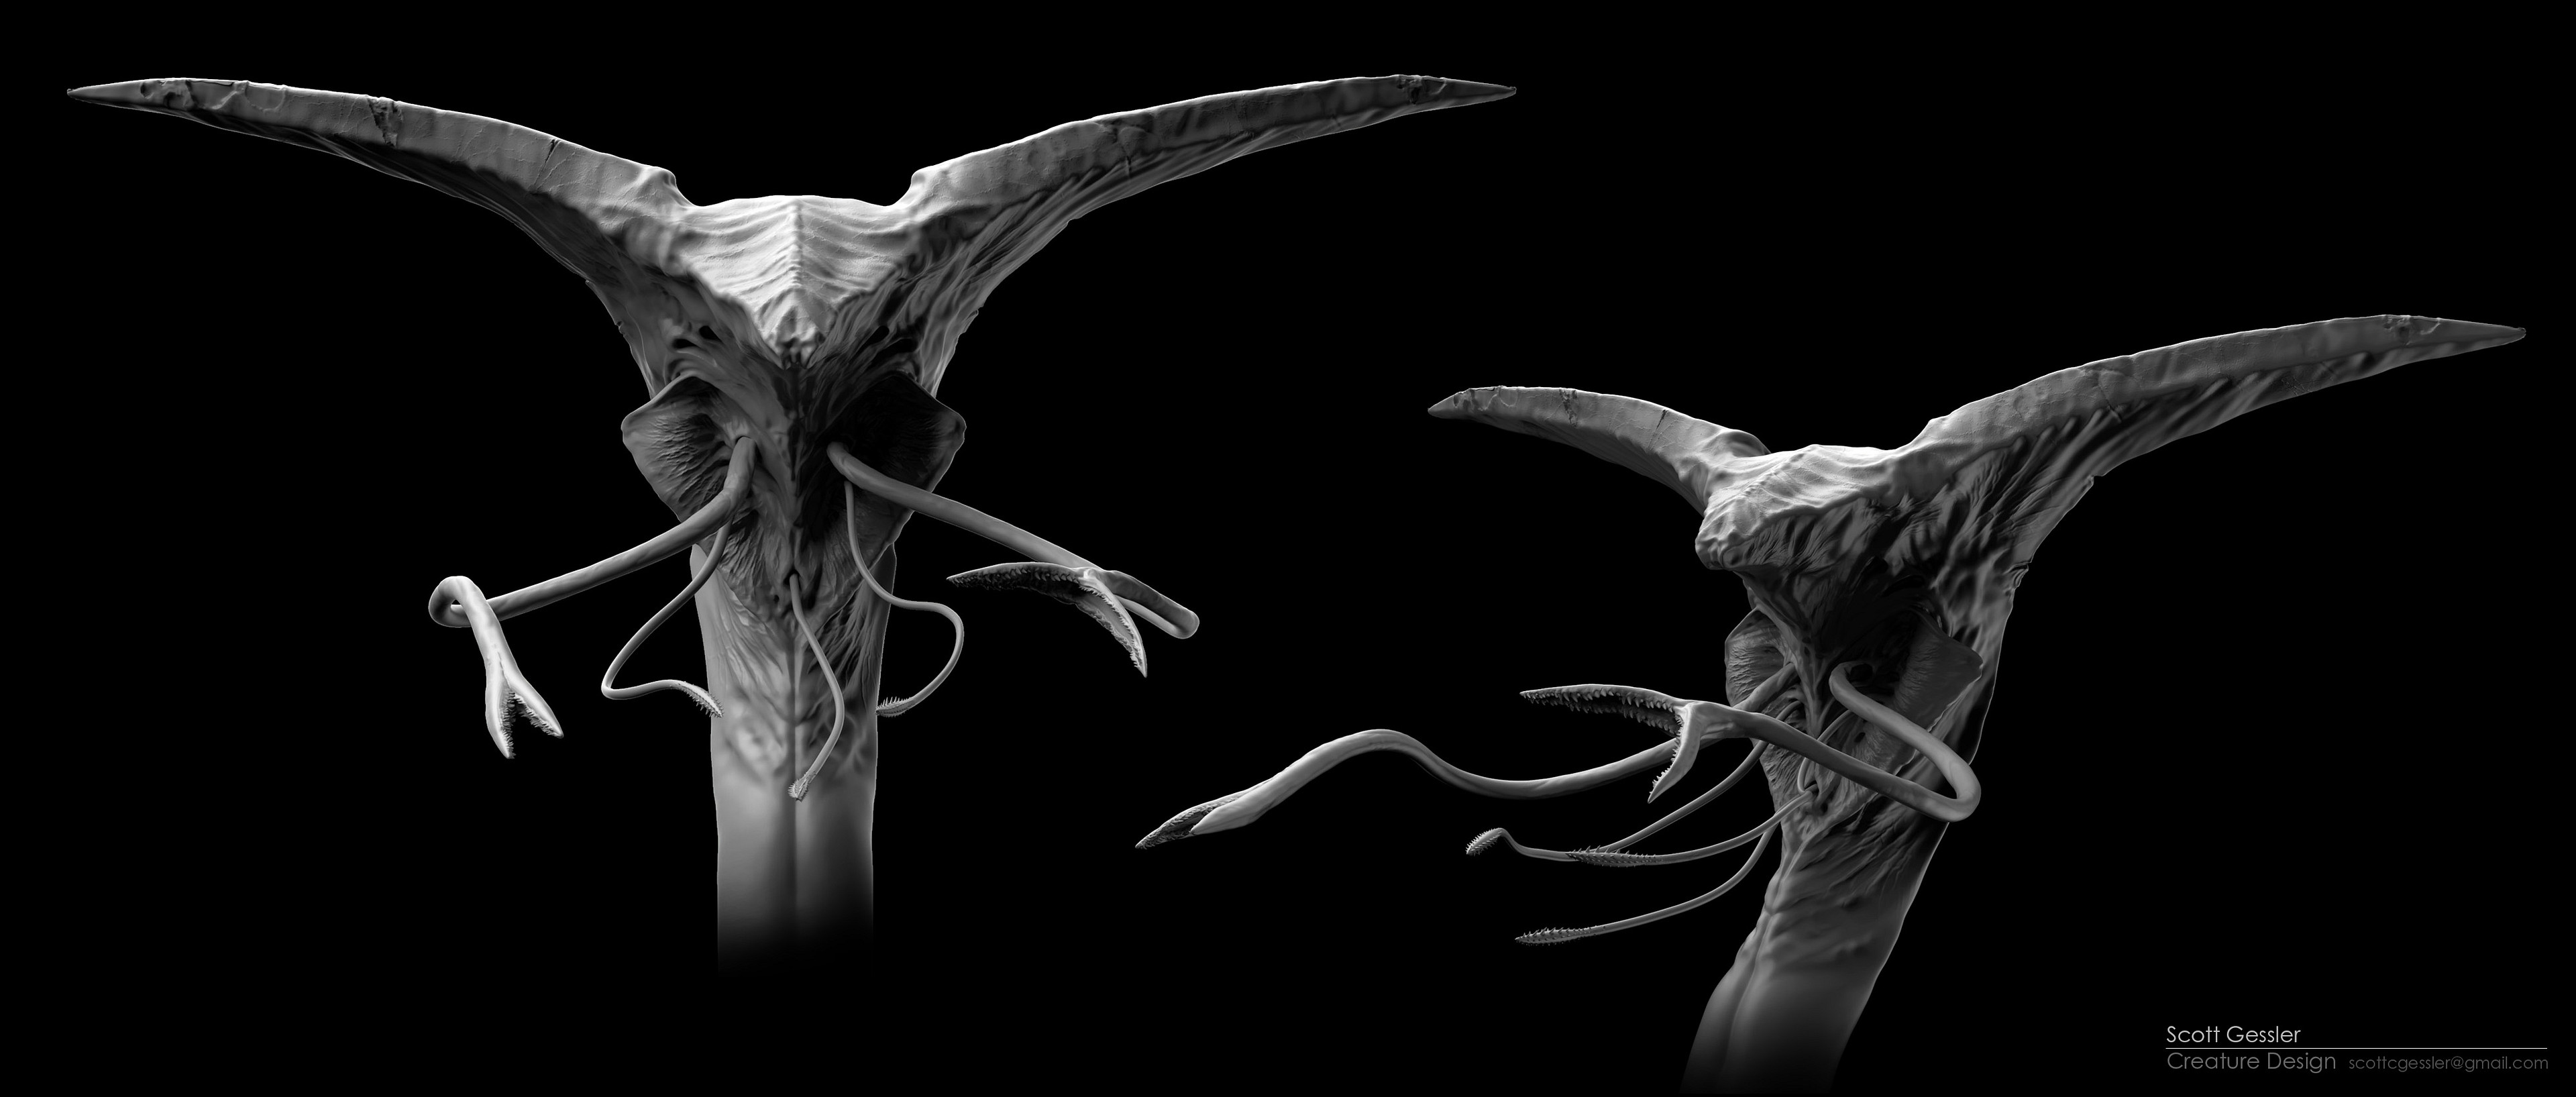 3D model sculpted in zbrush.